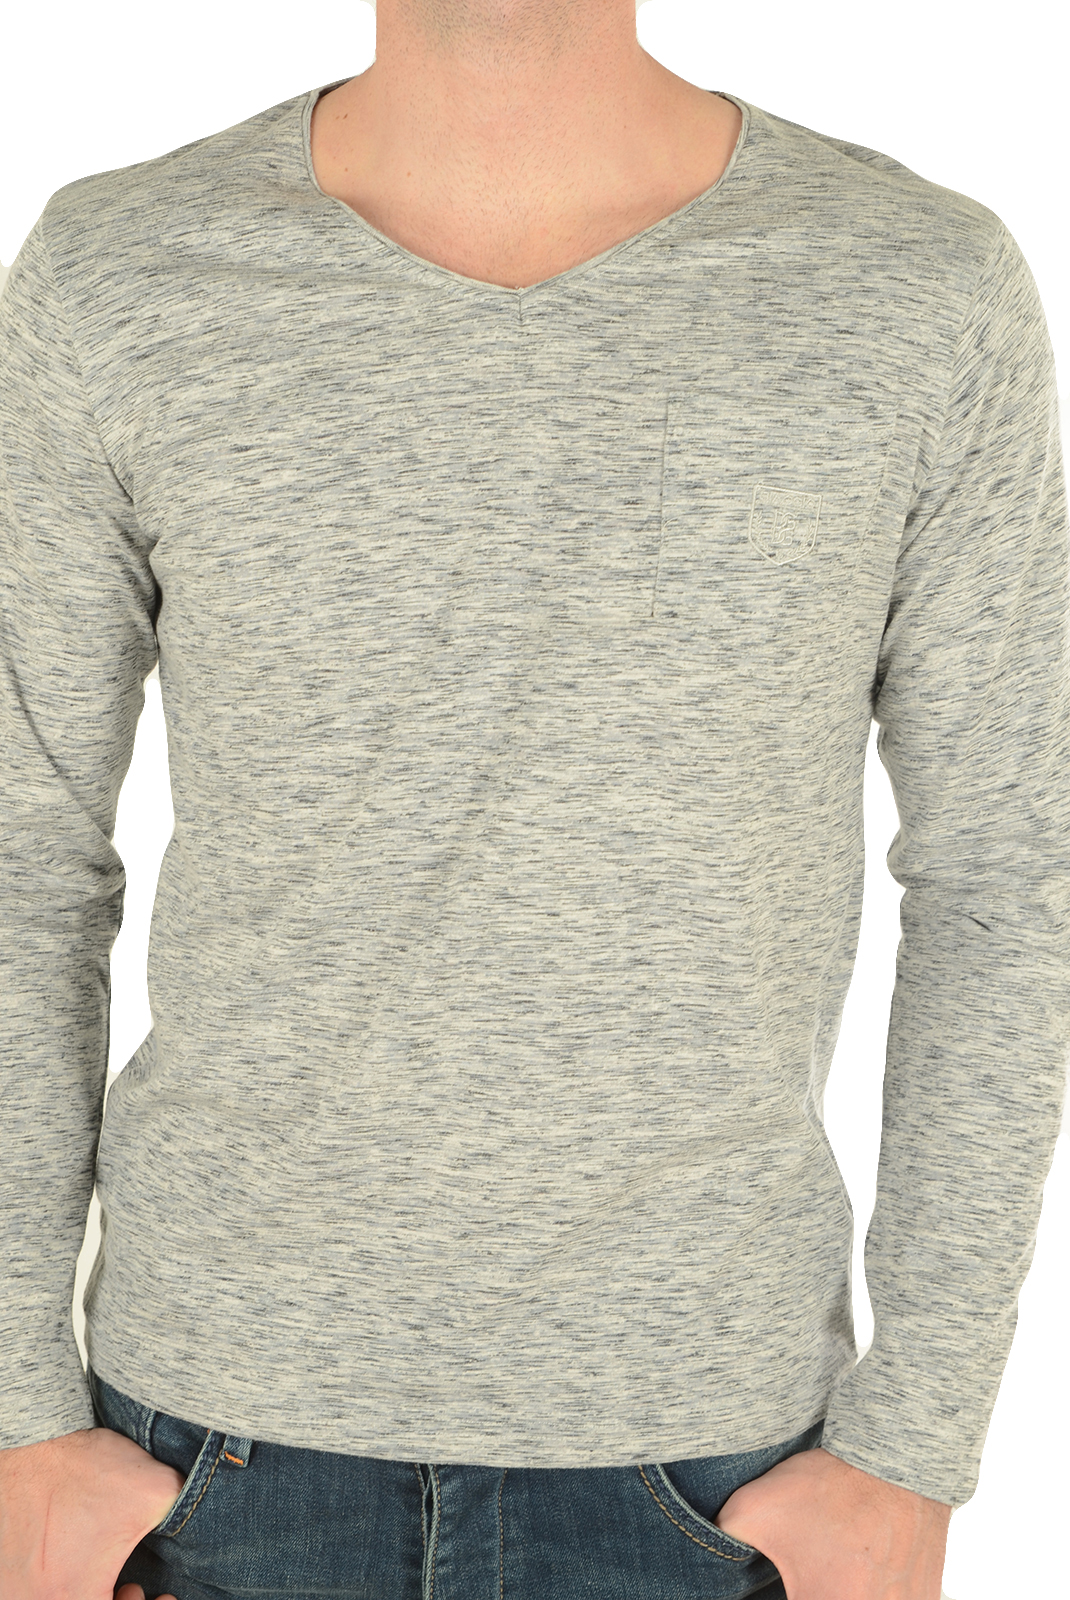 Tee-shirts manches longues  Biaggio jeans LUBOKIL LT GREY BLACK